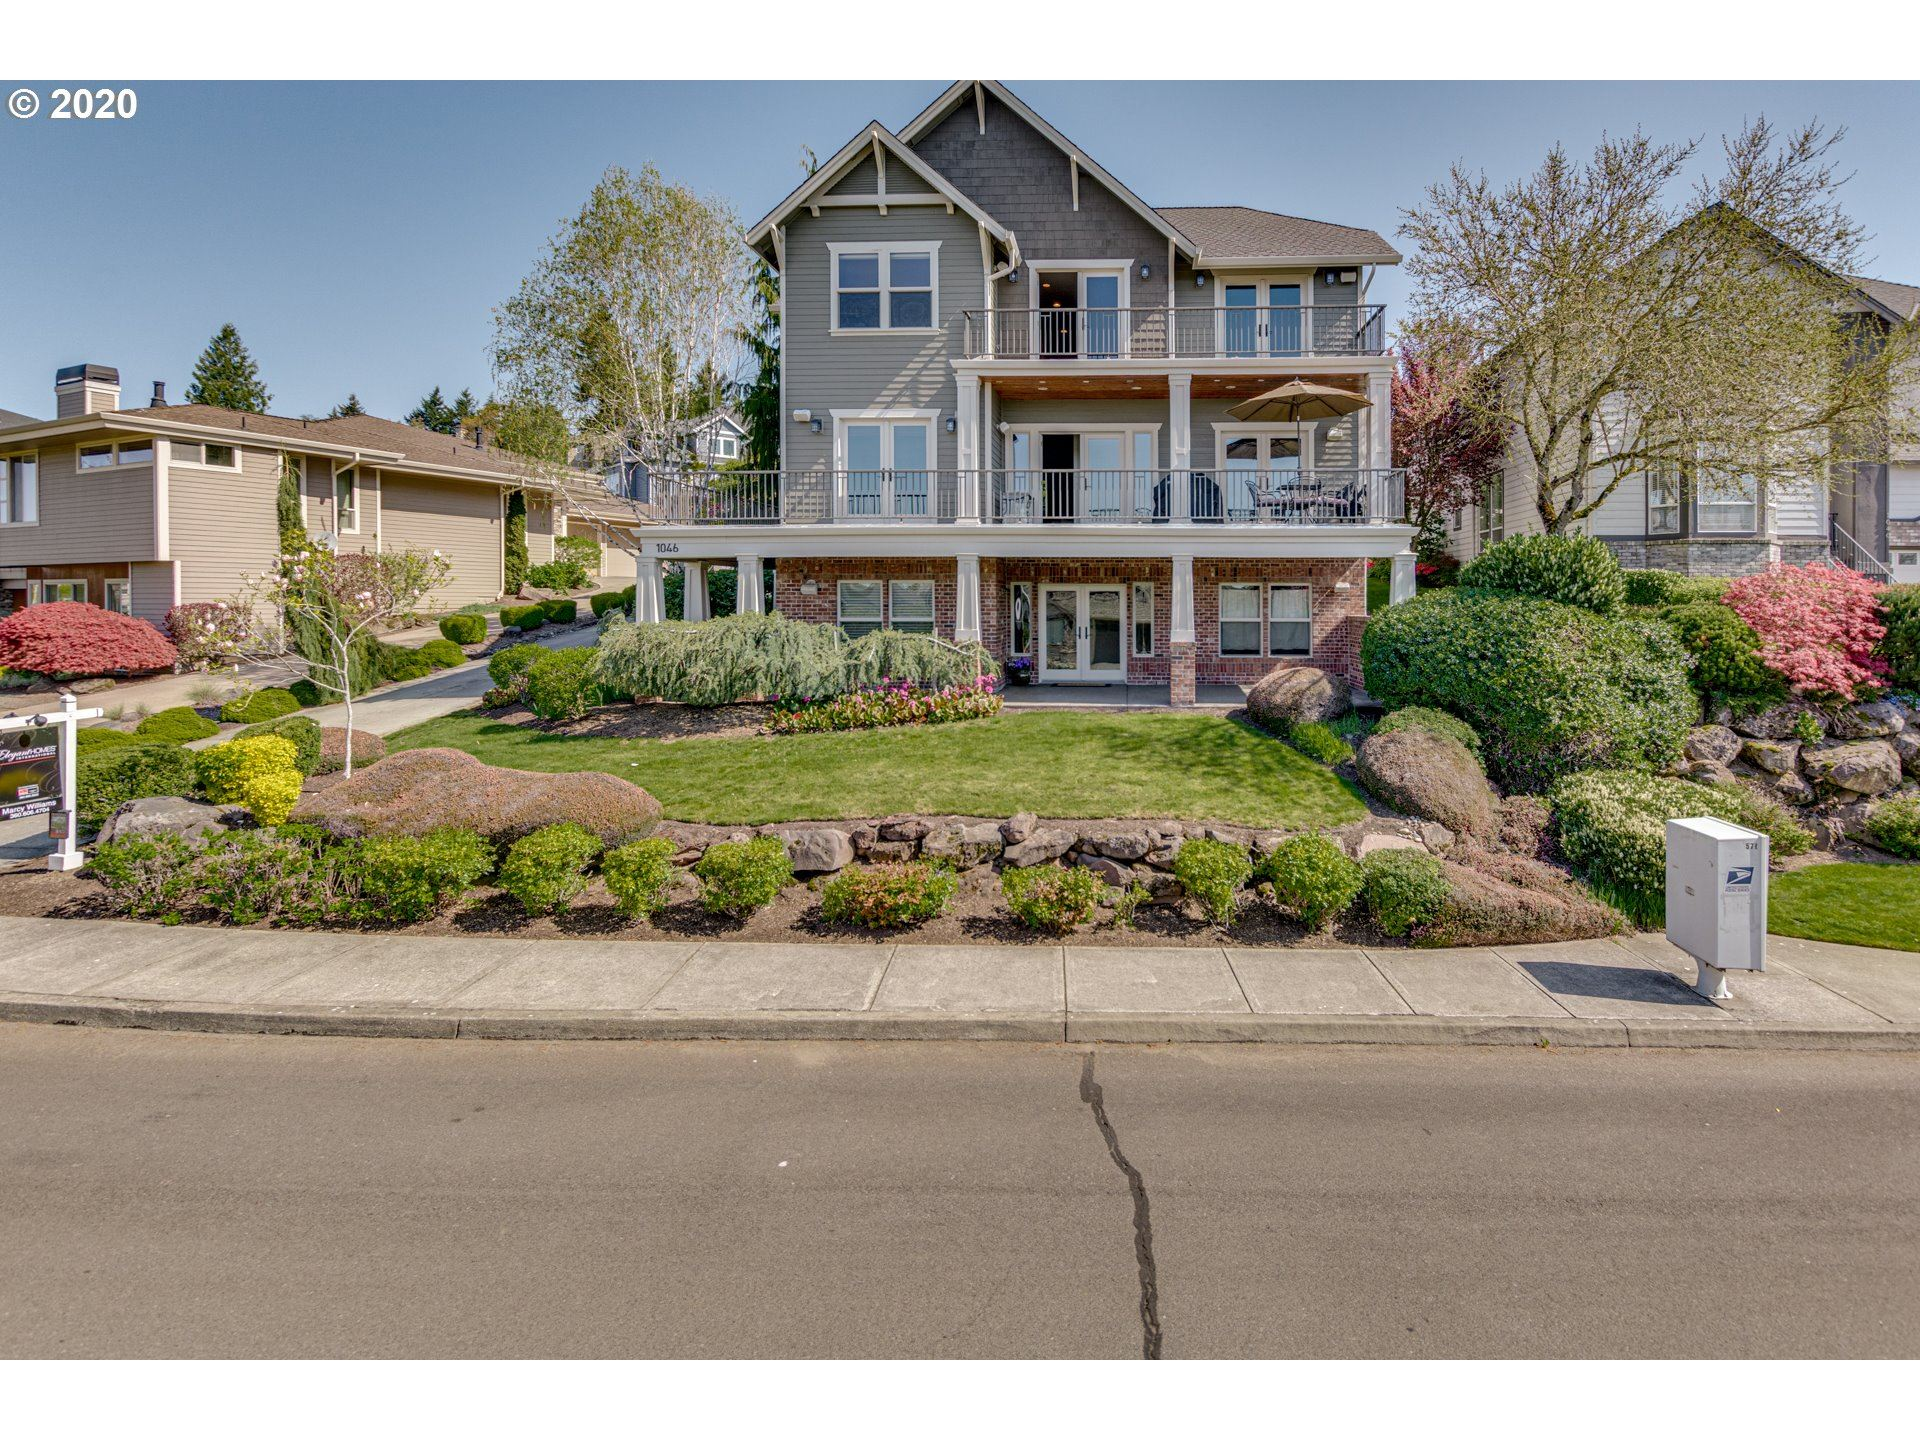 Photo for 1046 NW DEERFERN LOOP, Camas, WA 98607 (MLS # 20583934)